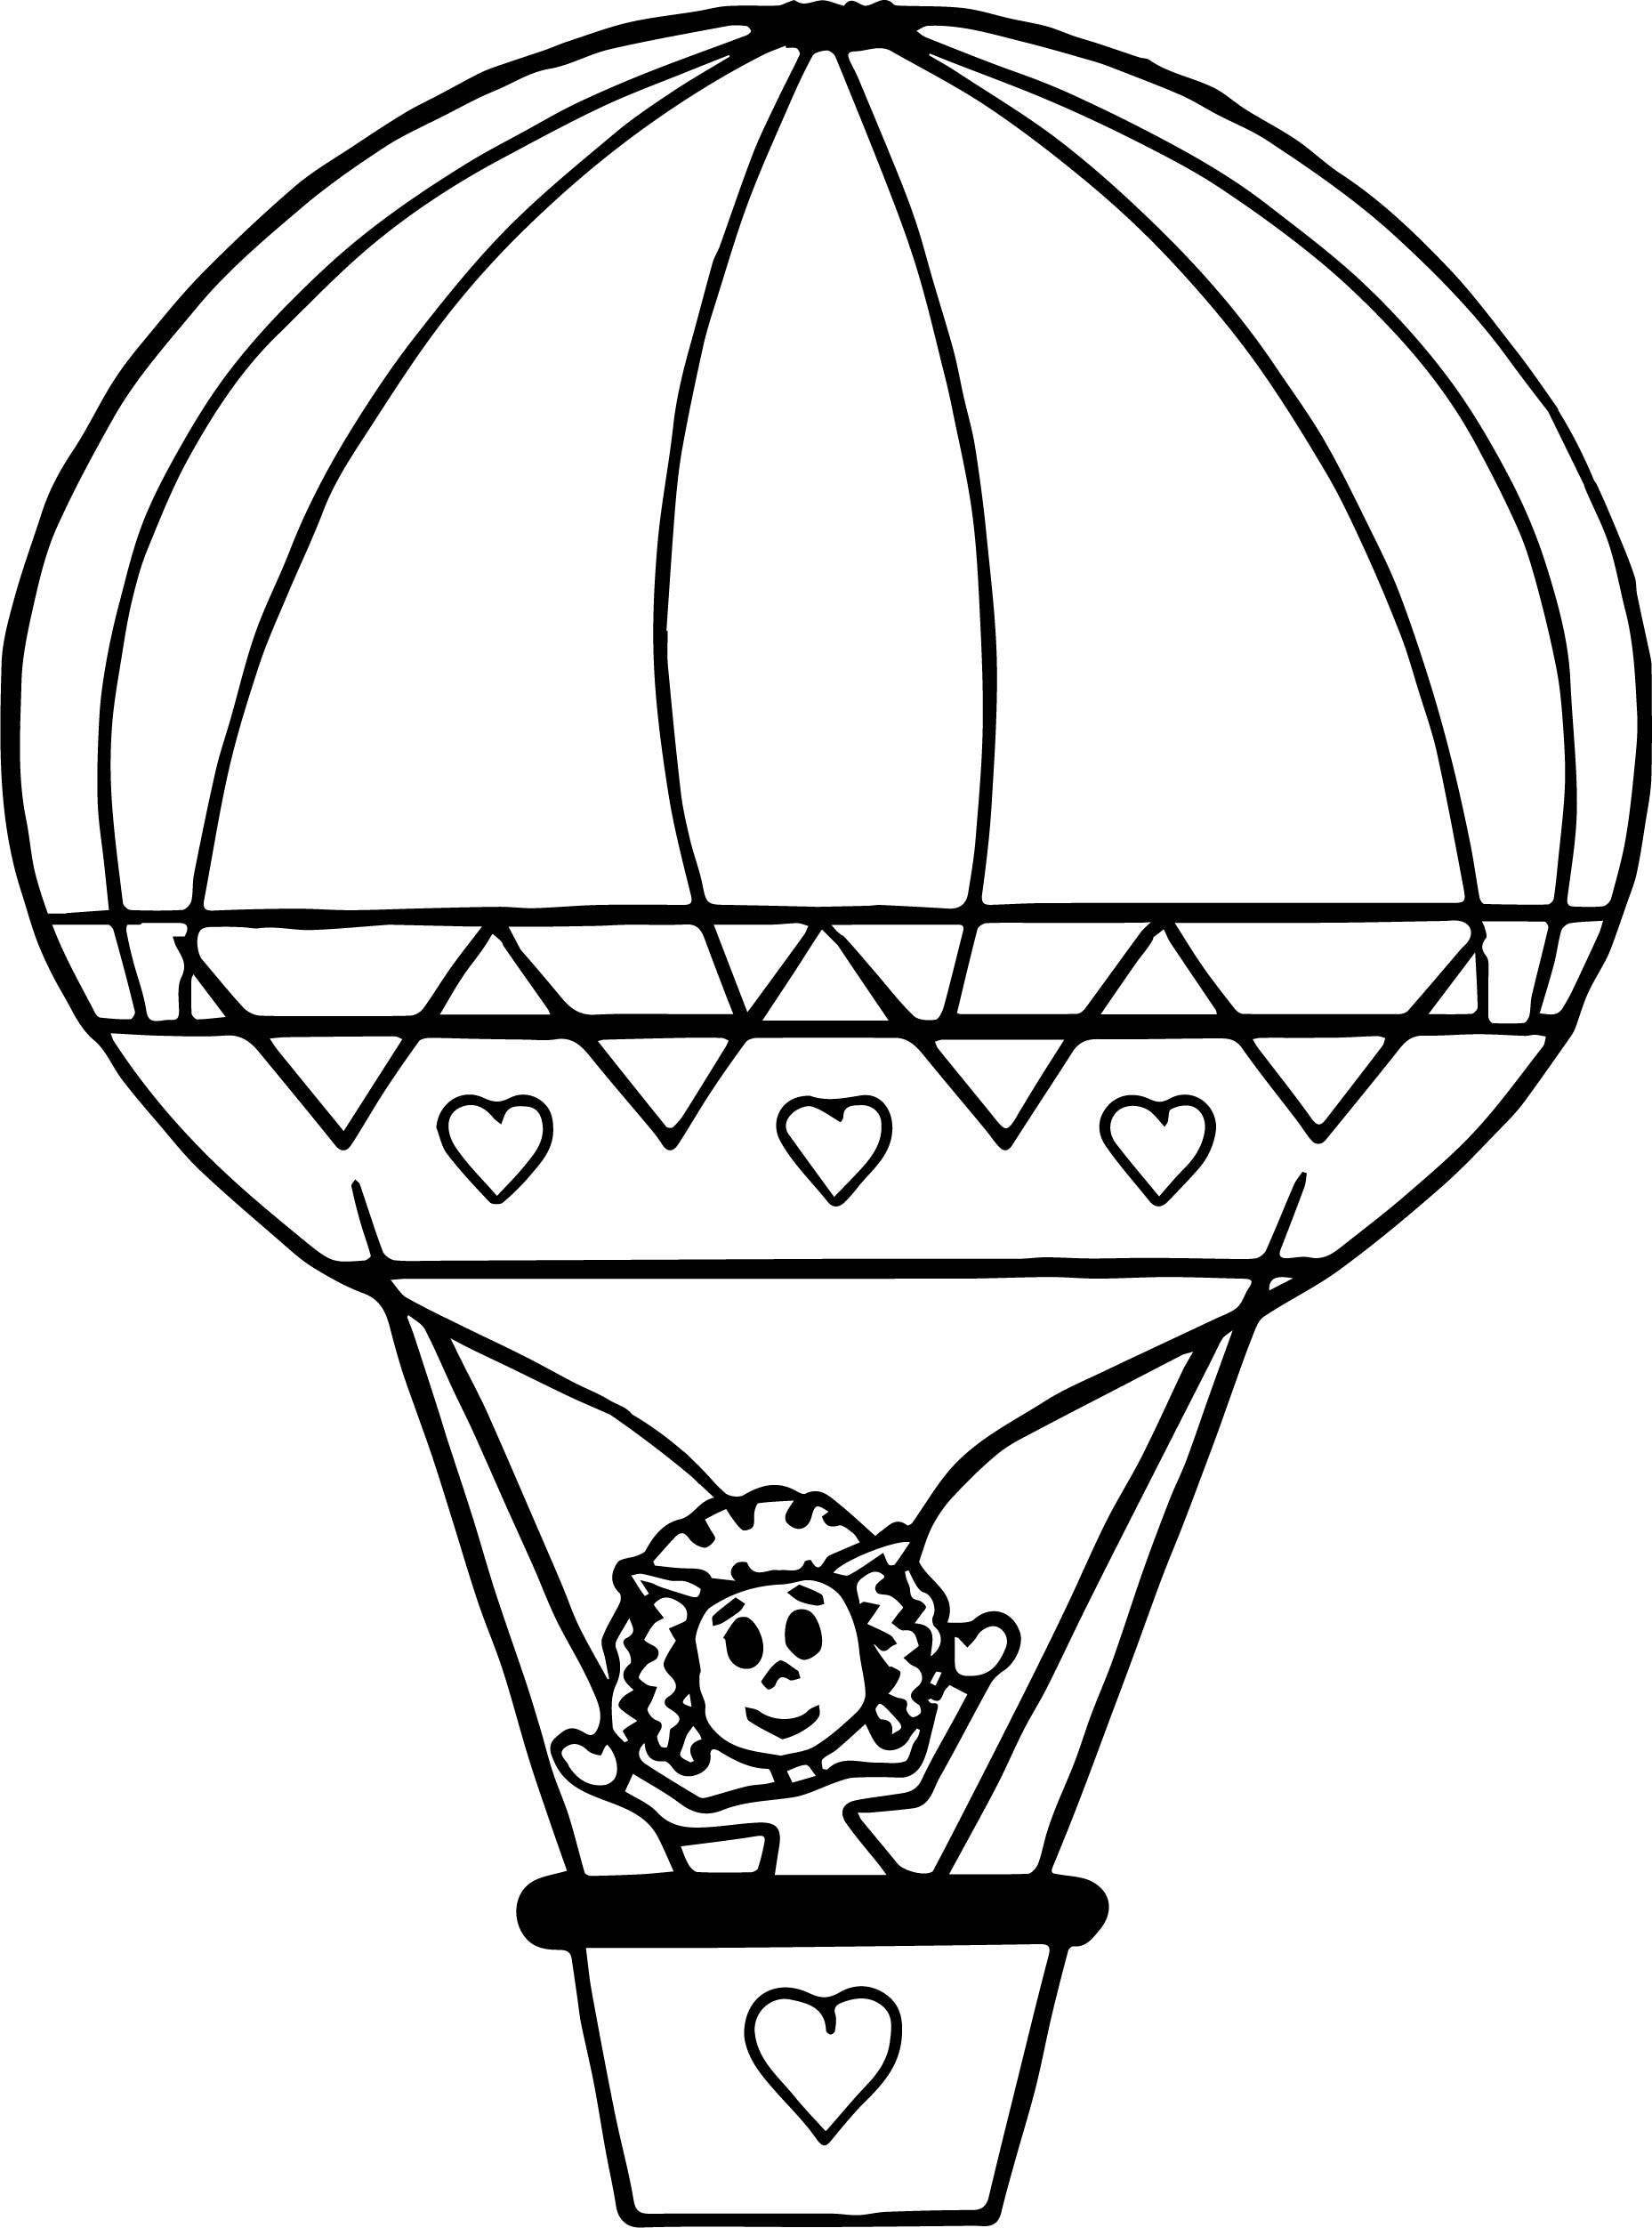 coloring ballons balloons coloring pages coloring ballons 1 1